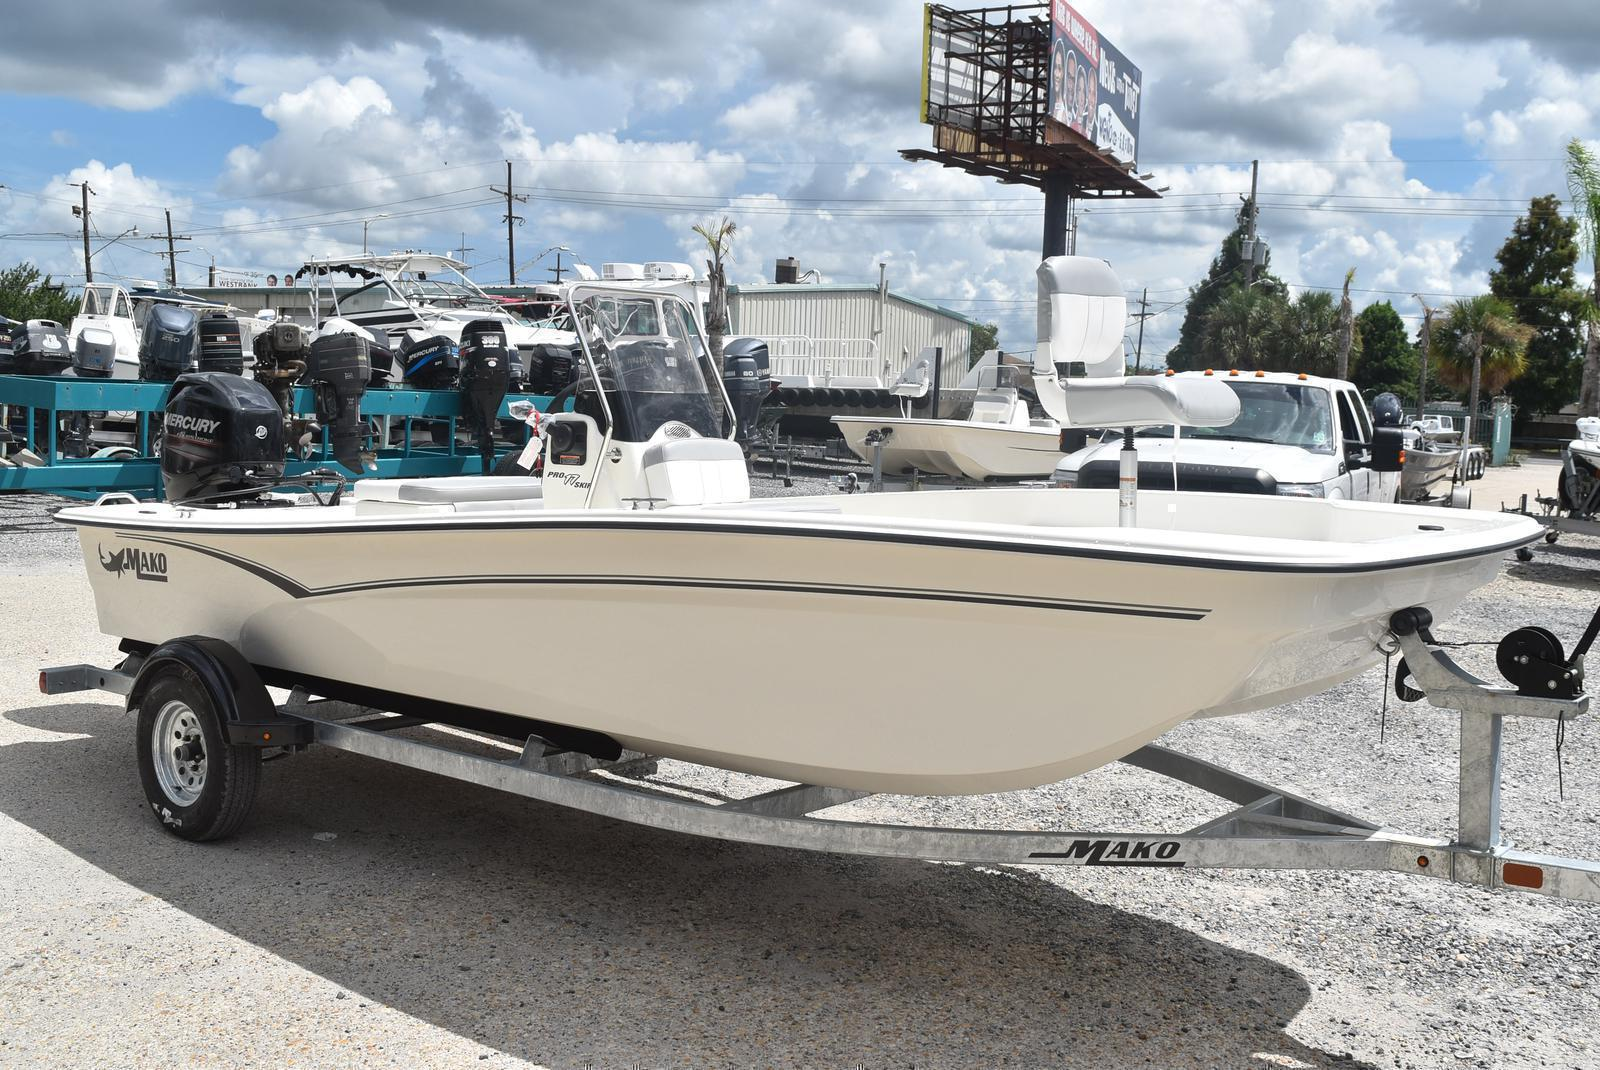 2020 Mako boat for sale, model of the boat is Pro Skiff 17, 75 ELPT & Image # 655 of 702